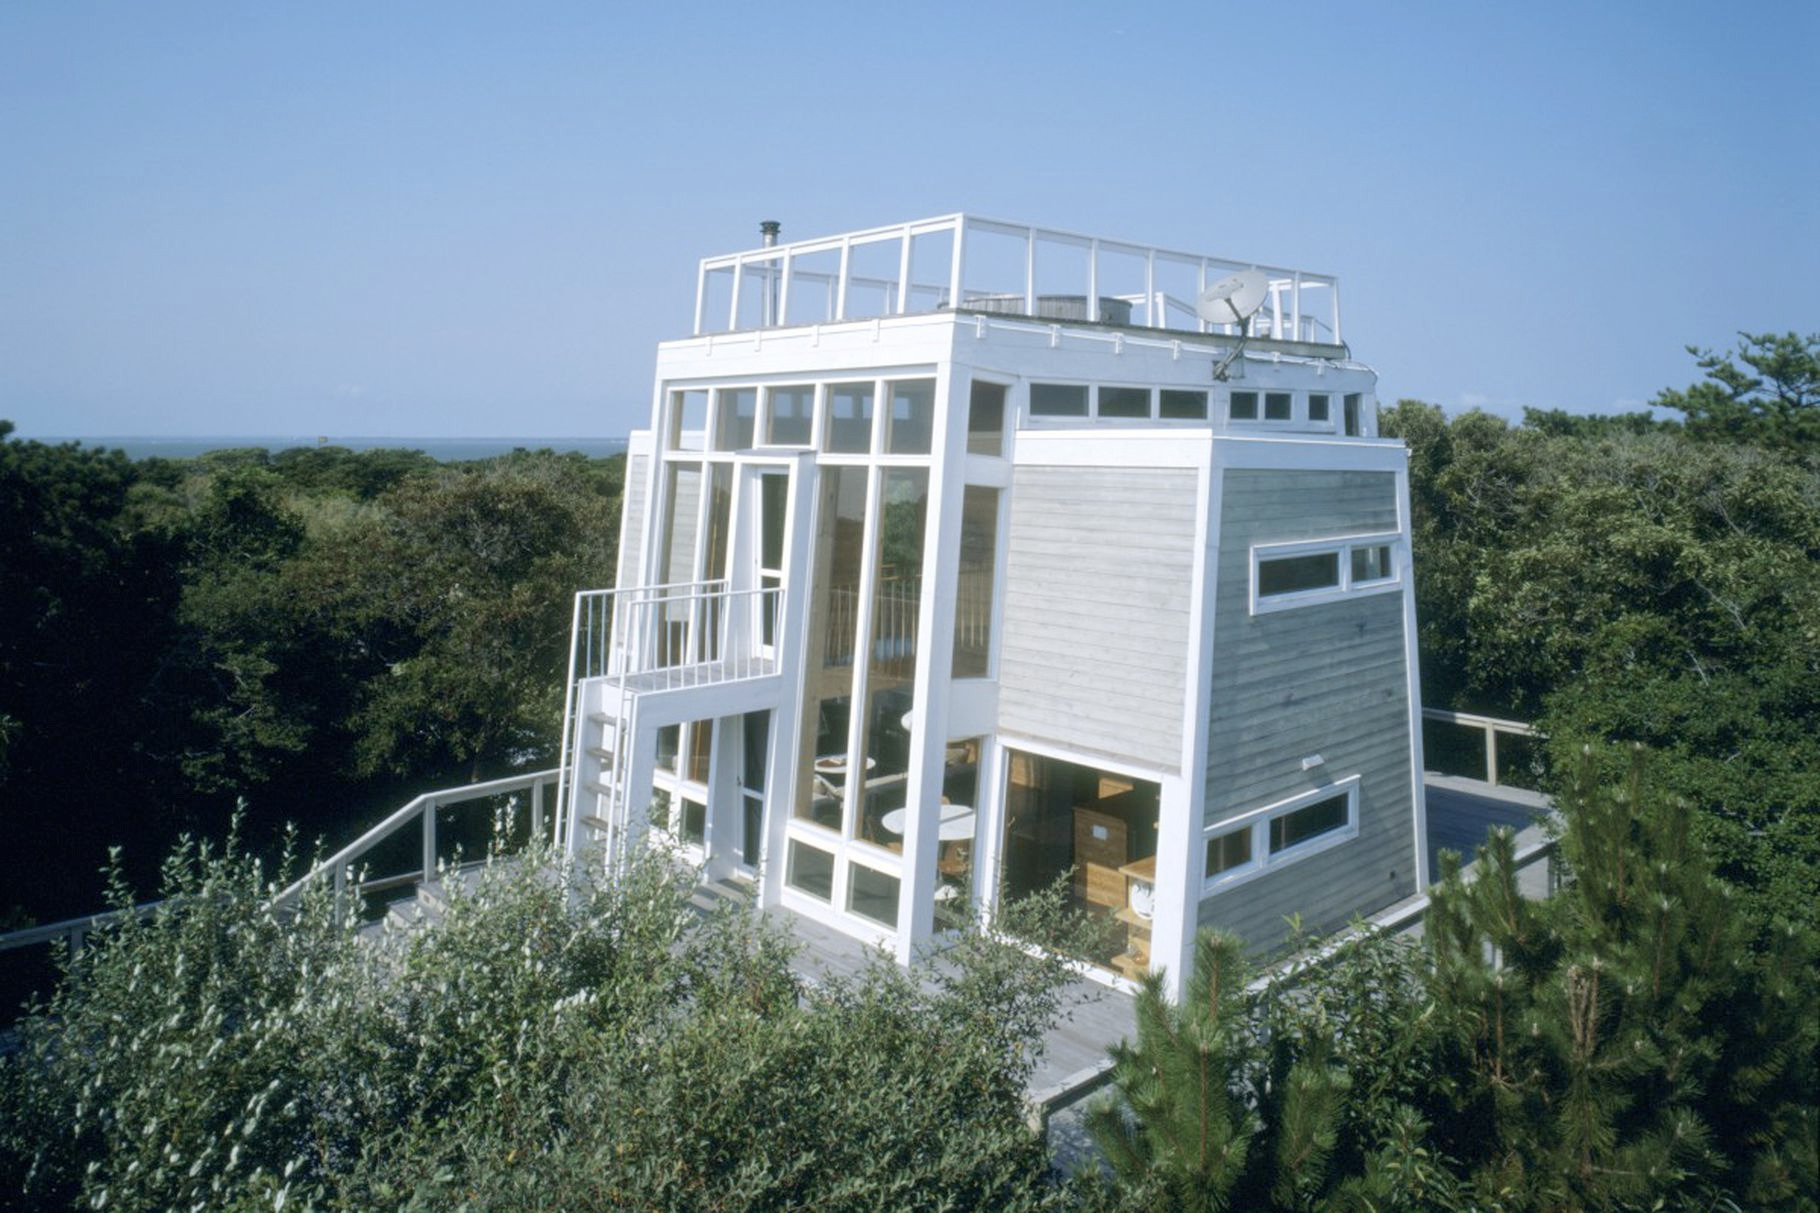 Snag '60s Fire Island Pines gem - red_wolf | ello